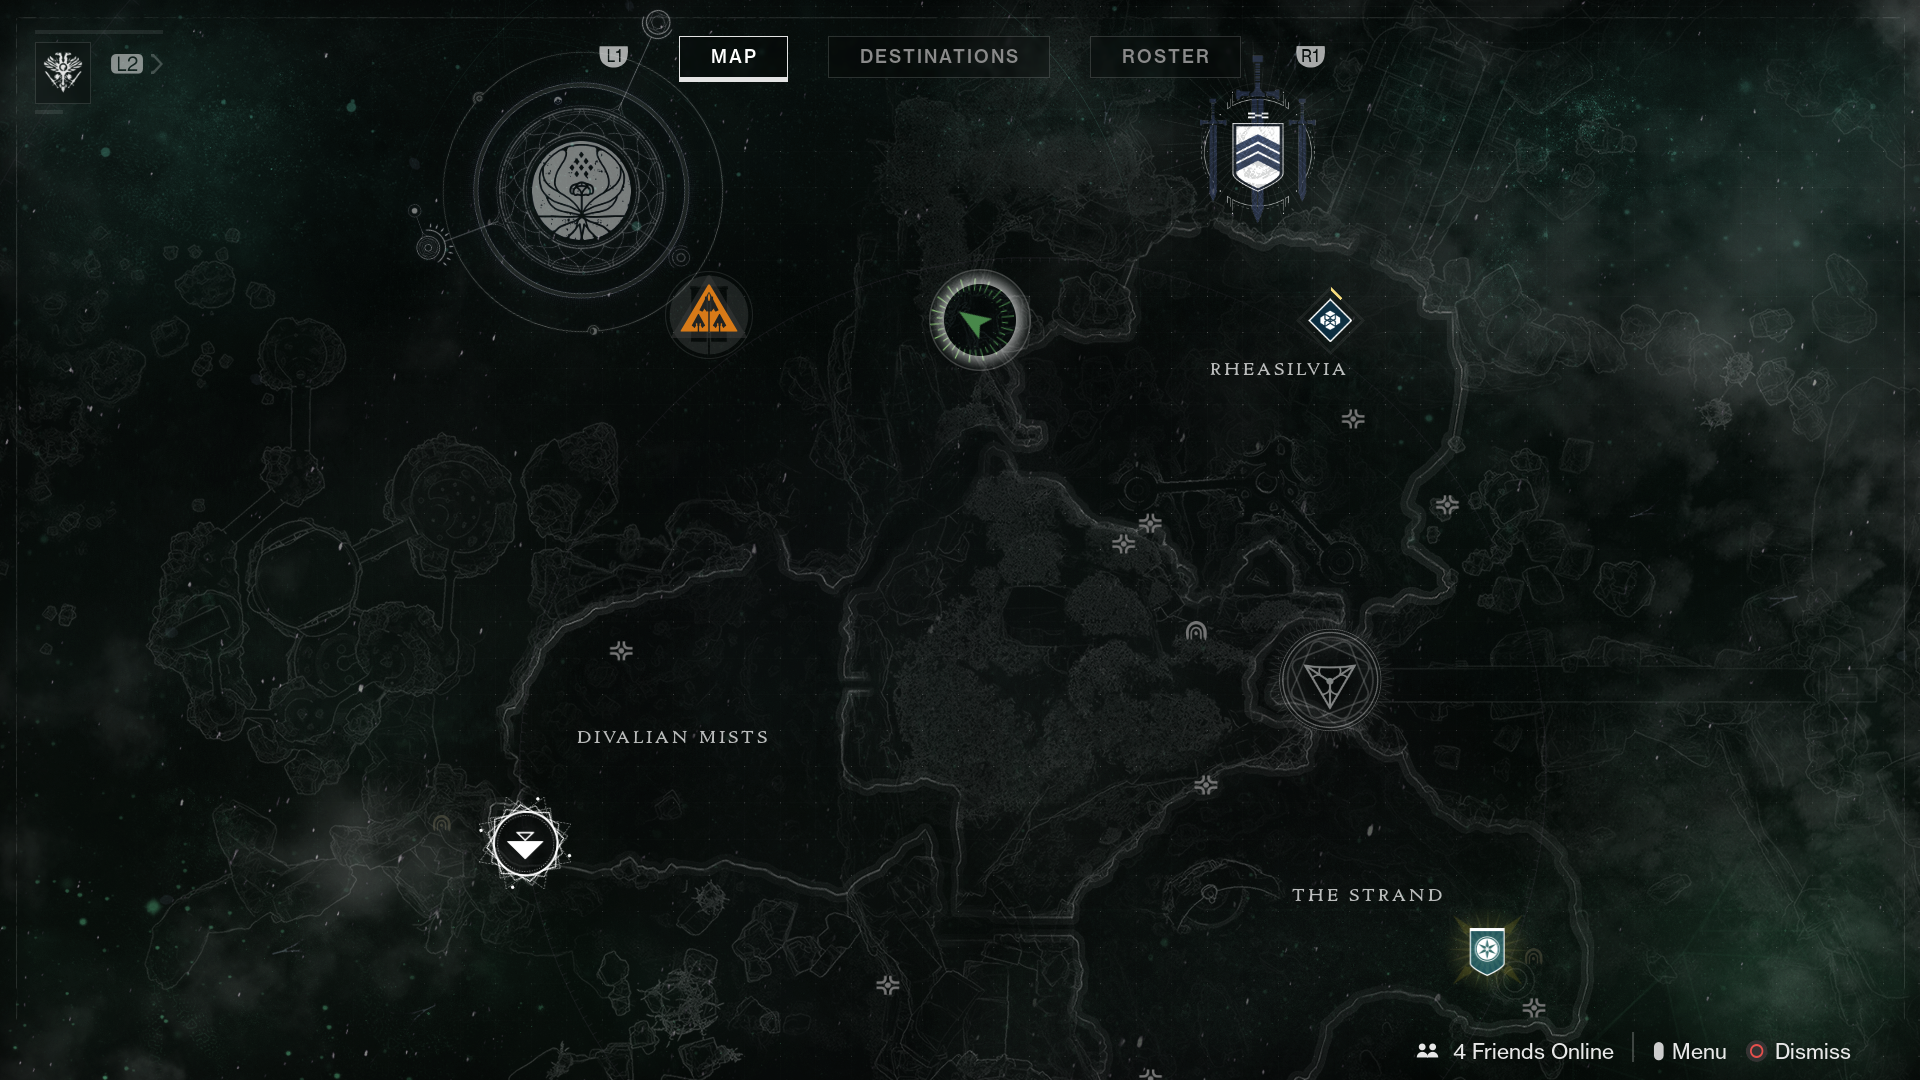 Destiny 2: Forsaken - Where to find all 8 cats in the Dreaming City